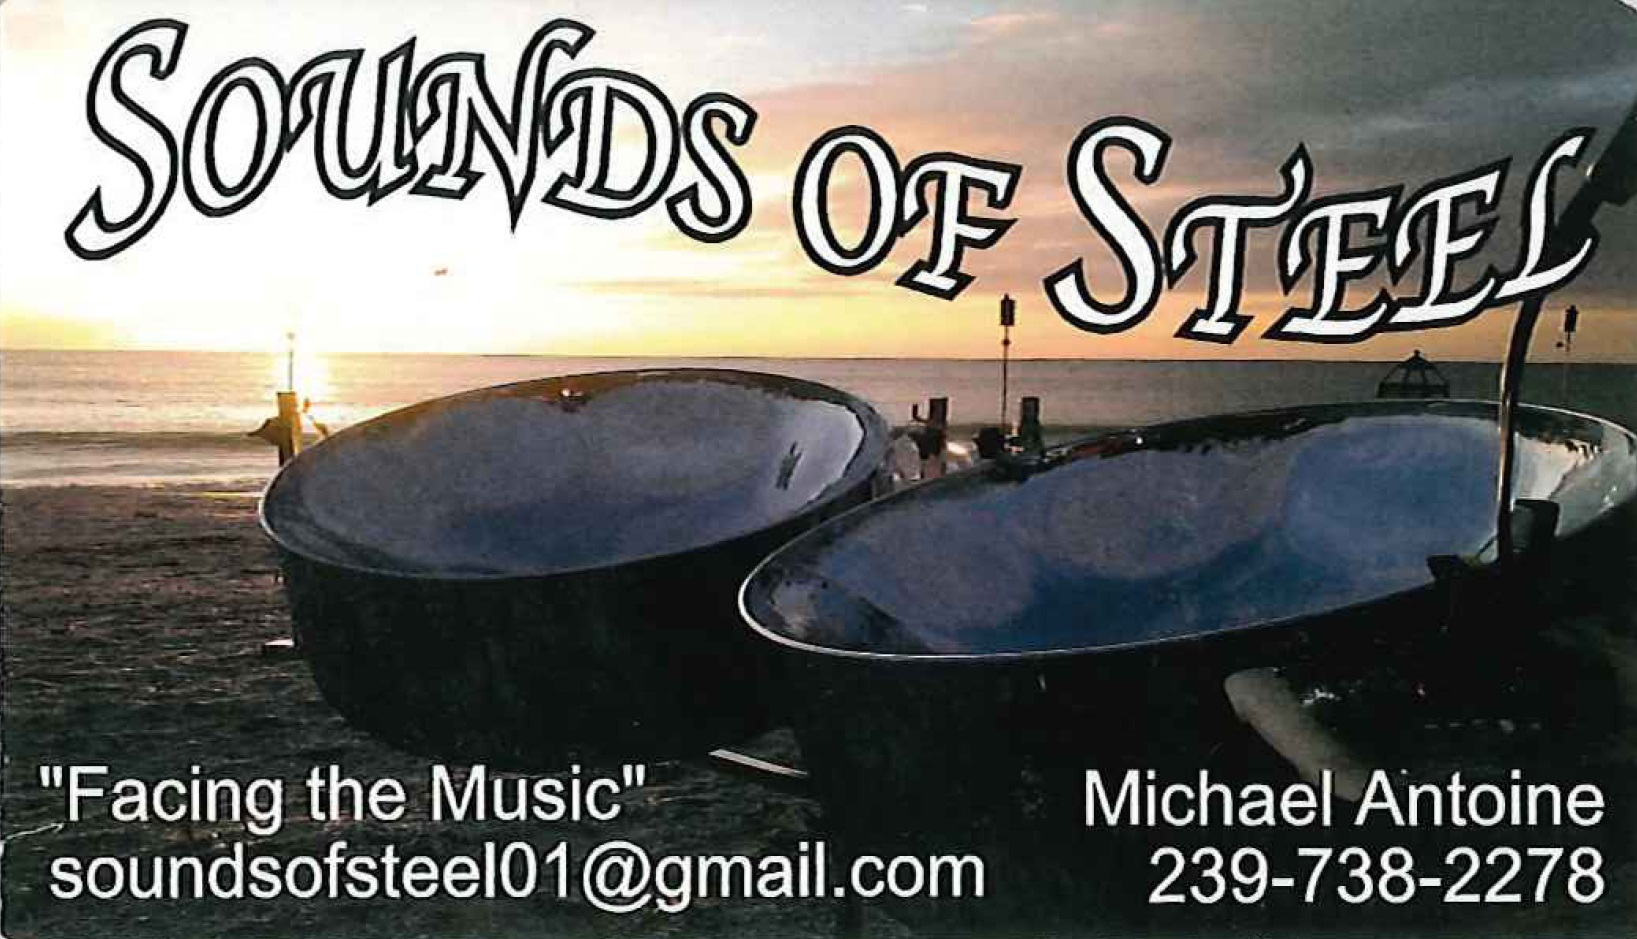 Sounds of Steel